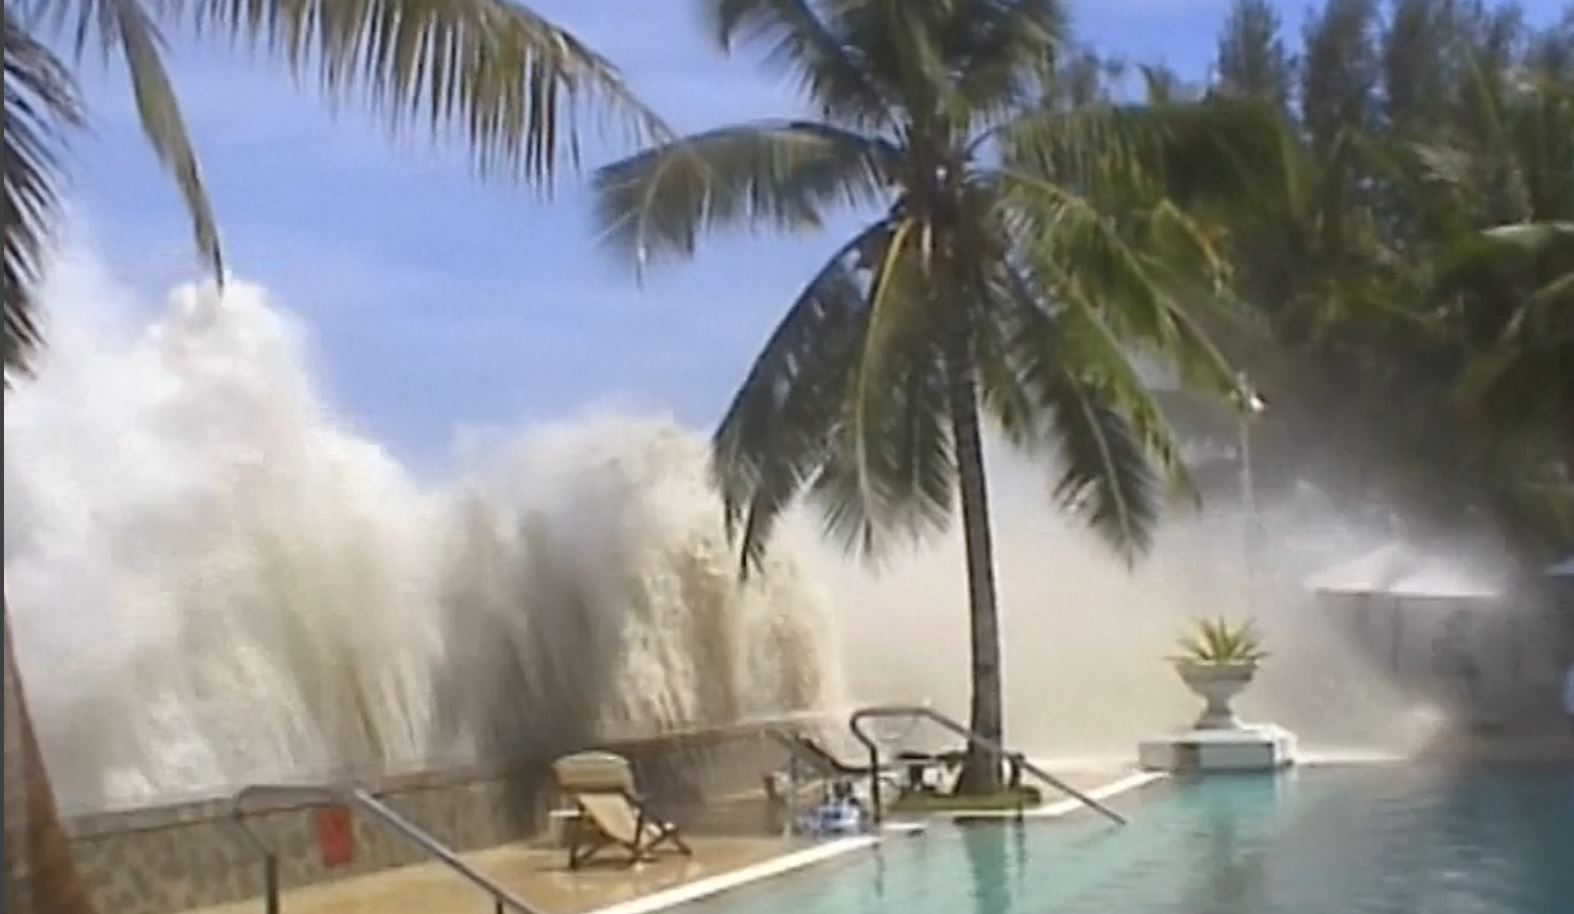 Indian Ocean Tsunami 10th anniversary: Harrowing archive footage of the disaster